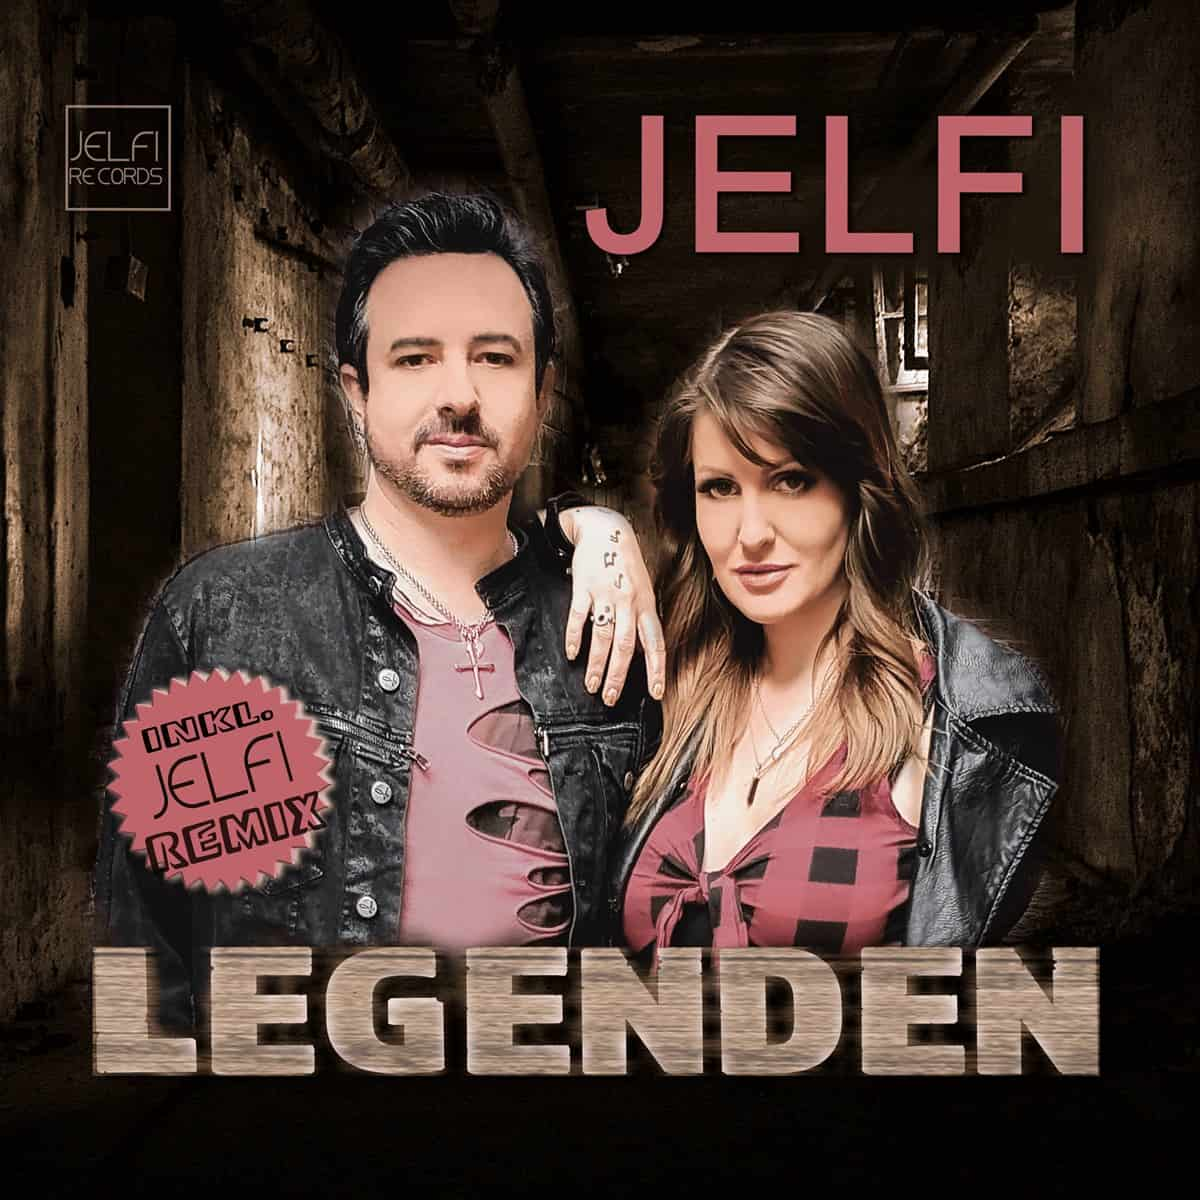 Jelfi - Legenden